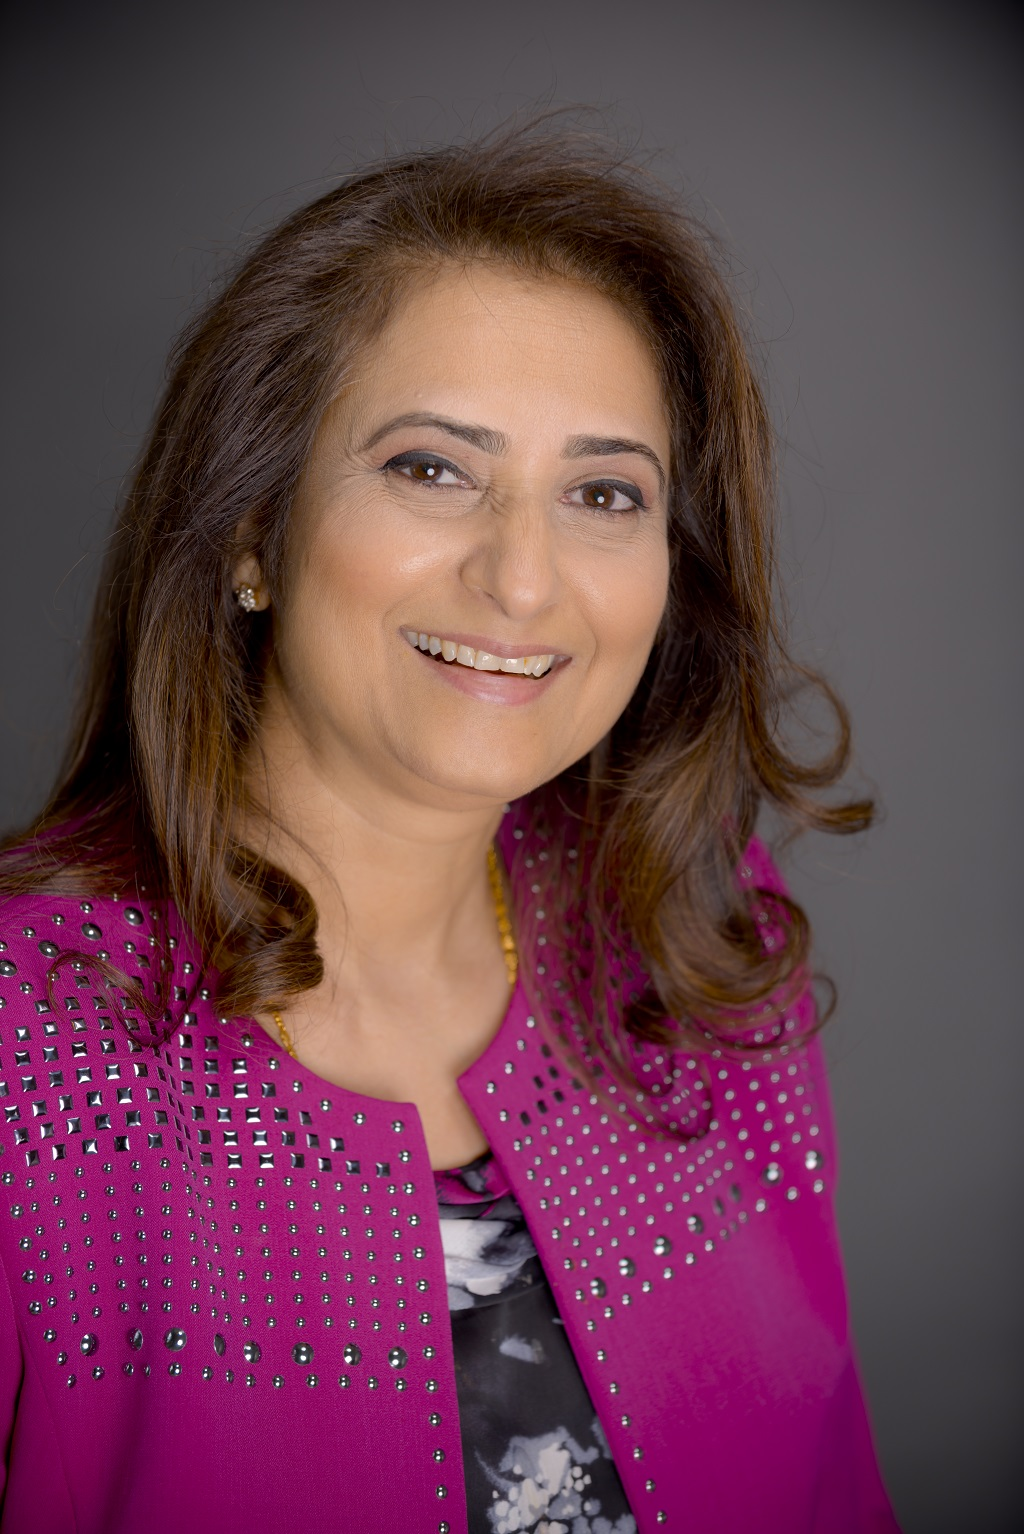 Co-Founder and COO Gita Bhargava Wins Women of Influence Award